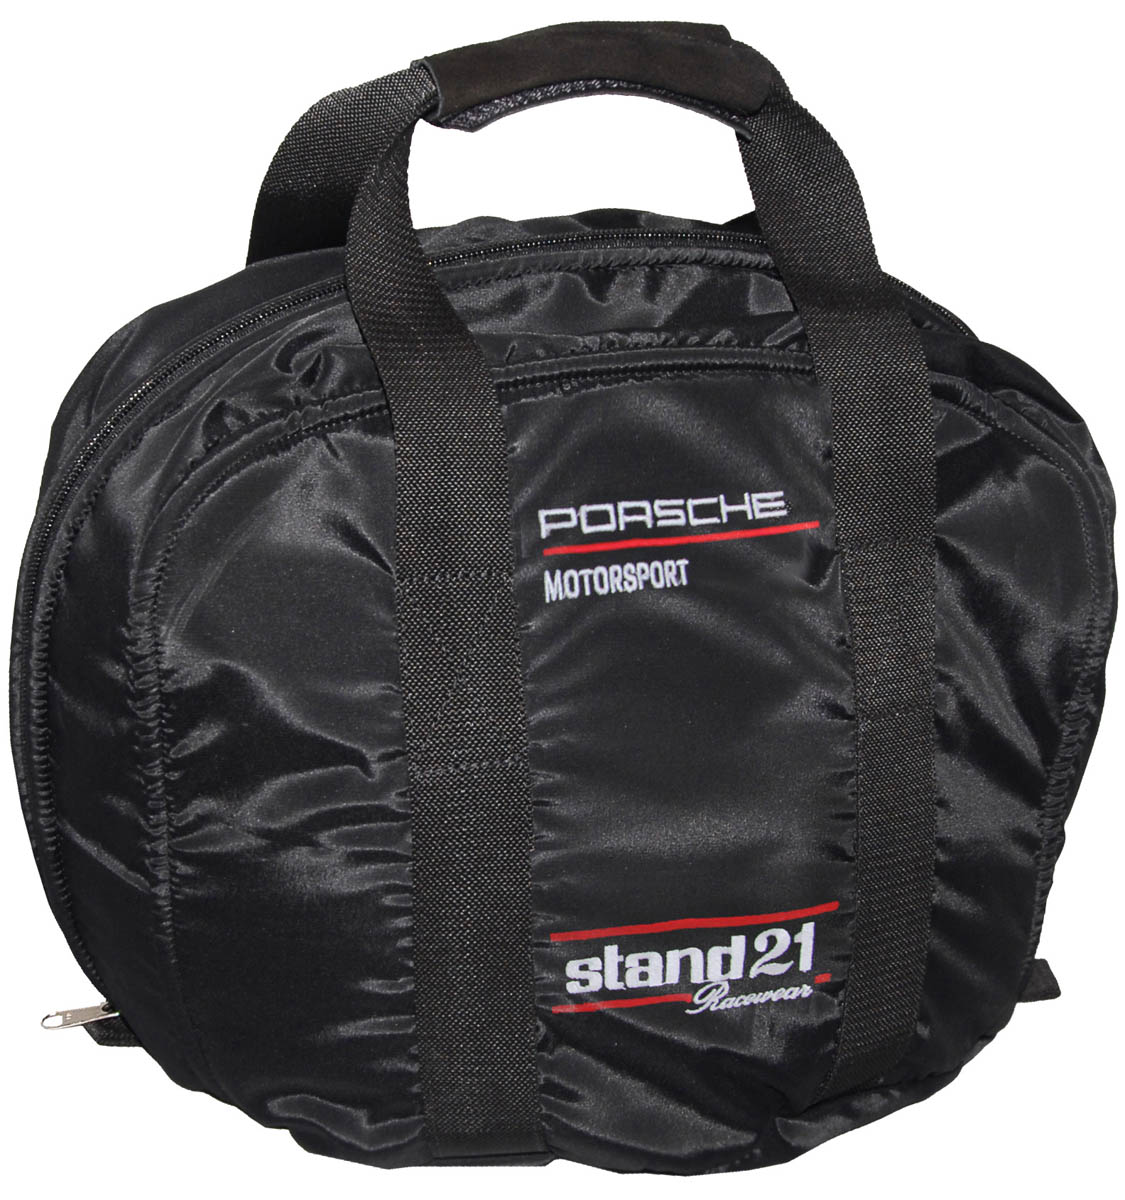 Porsche Motorsport helmet bag